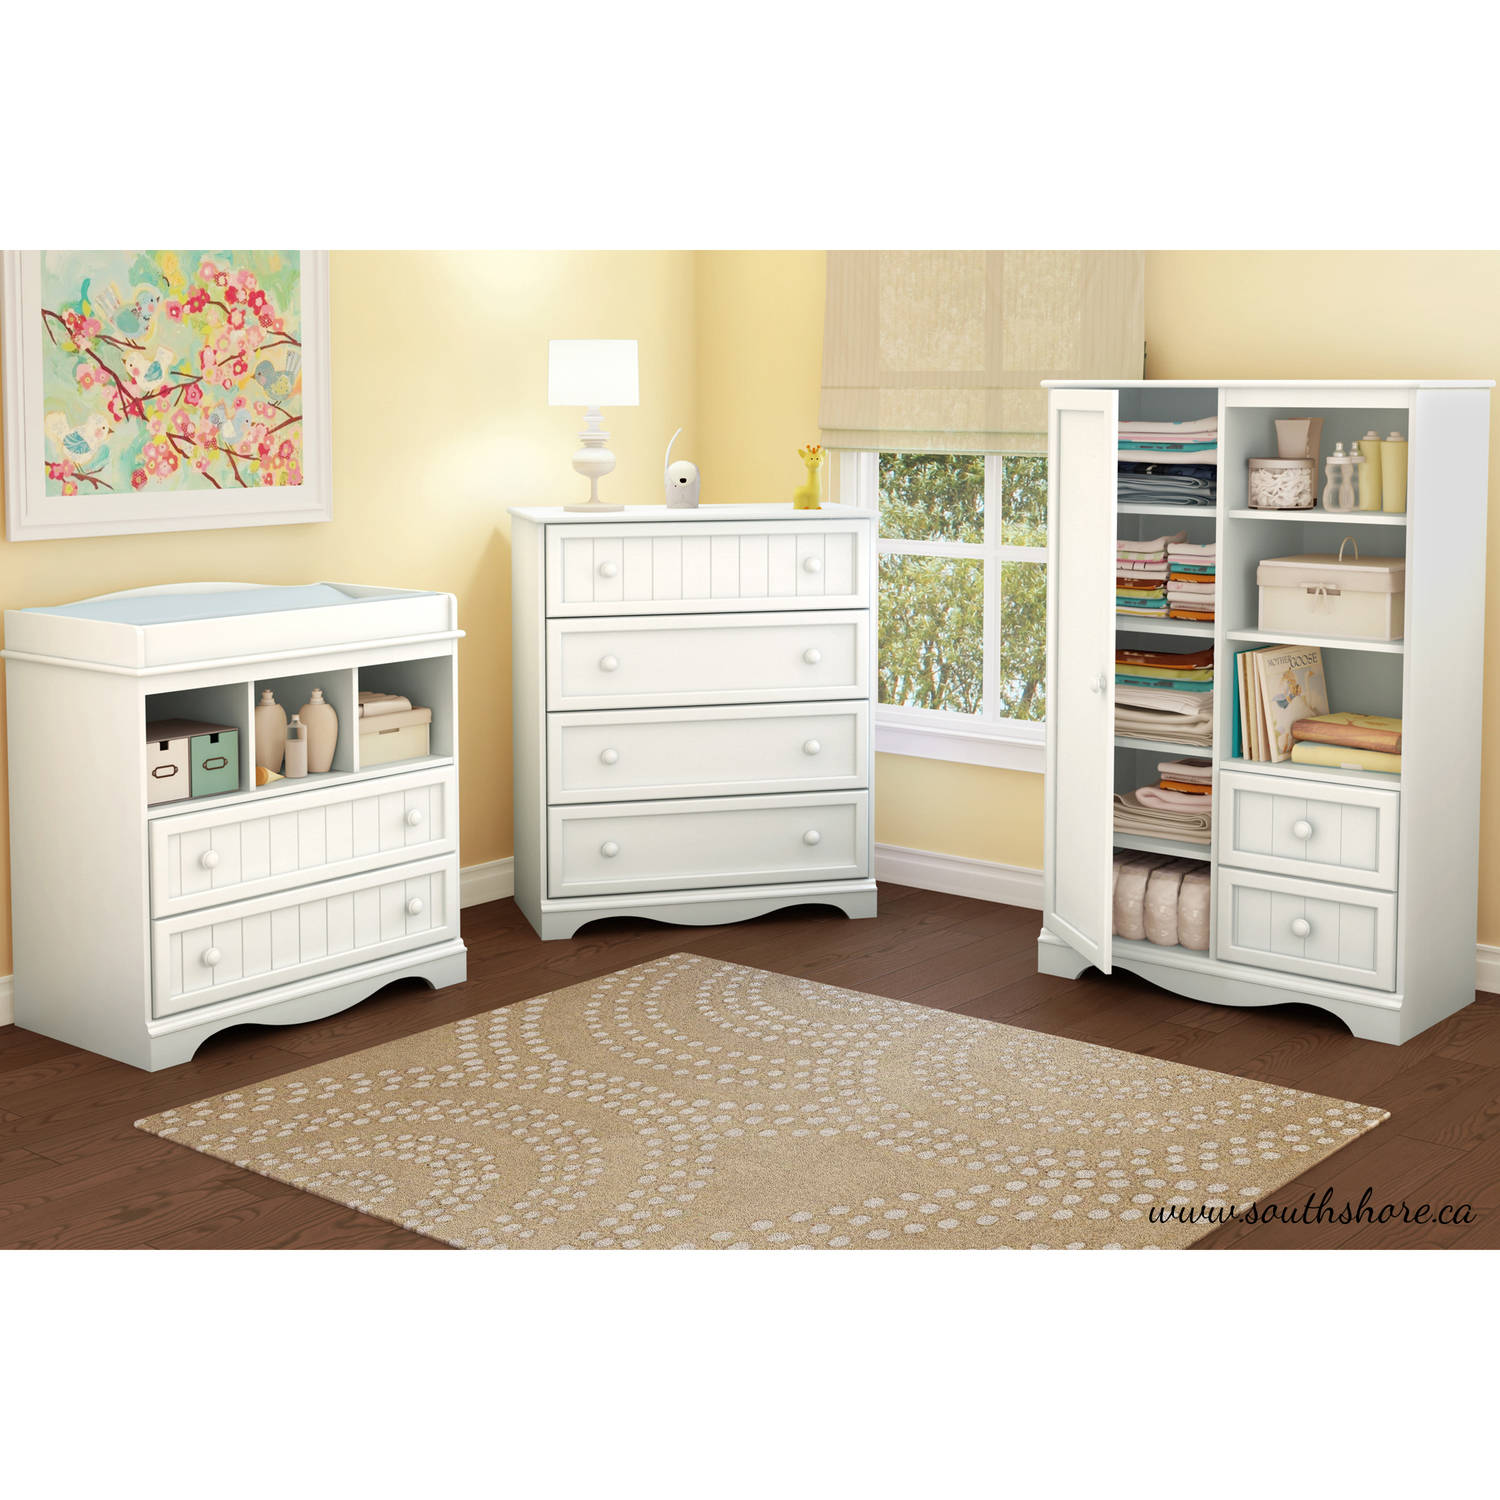 South Shore Country Pure White Changing Table 3580330. About This Product.  Picture 1 Of 5; Picture 2 Of 5 ...